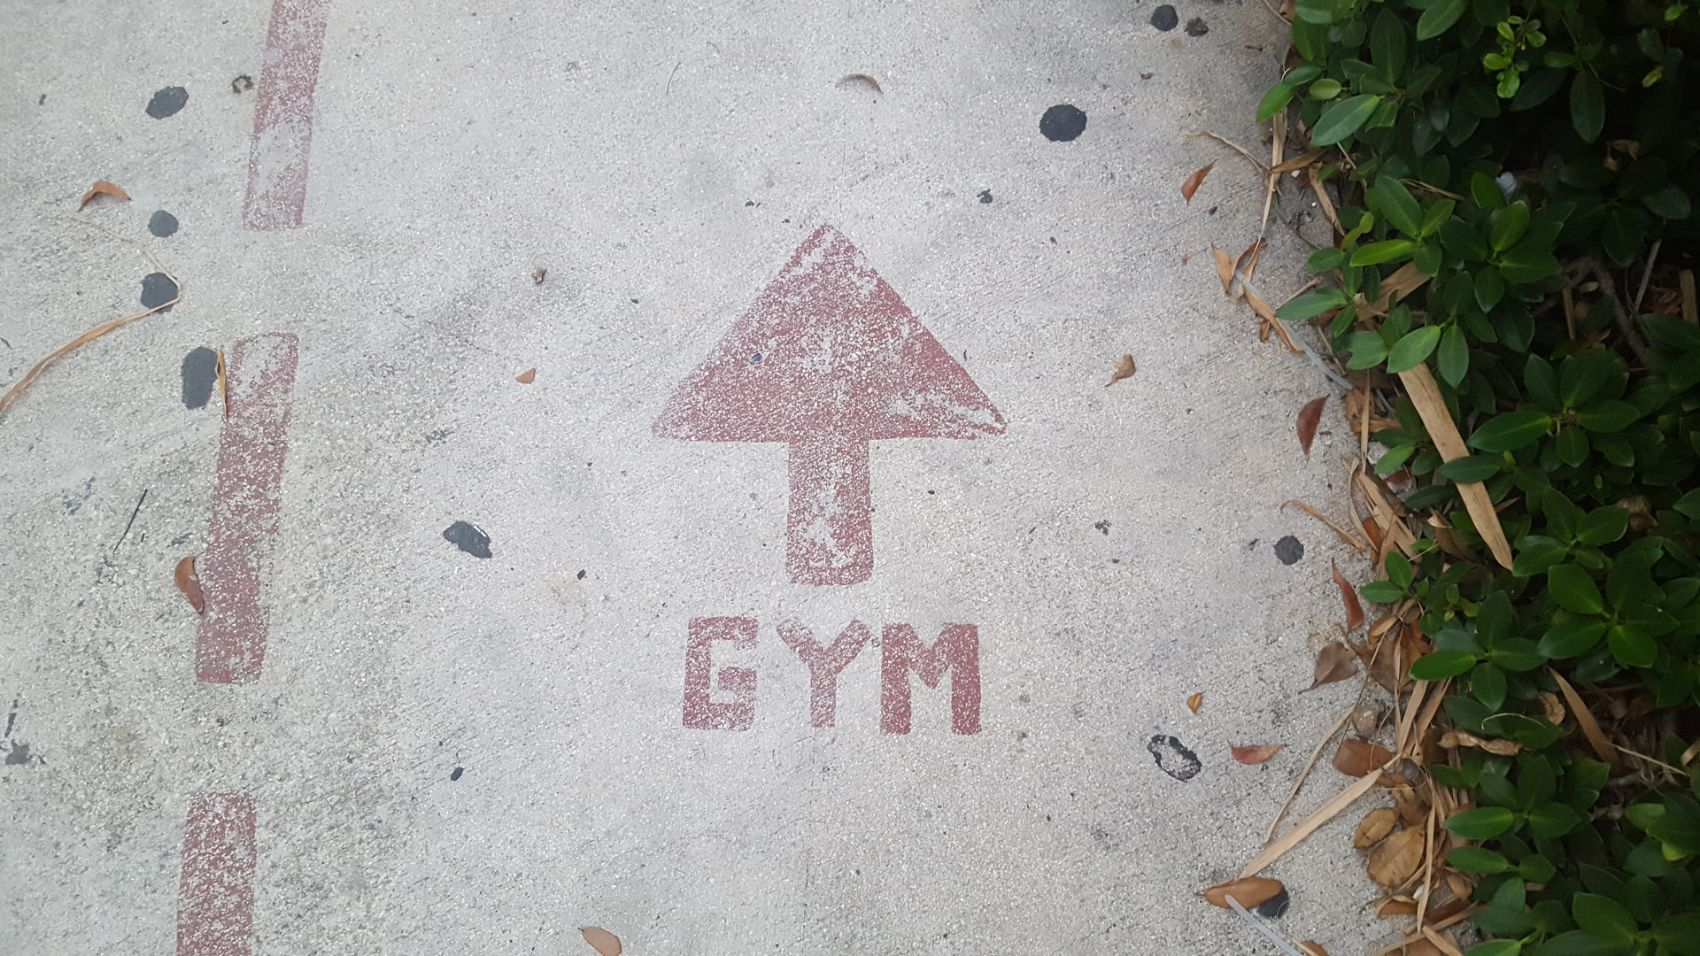 The Way to the Gym